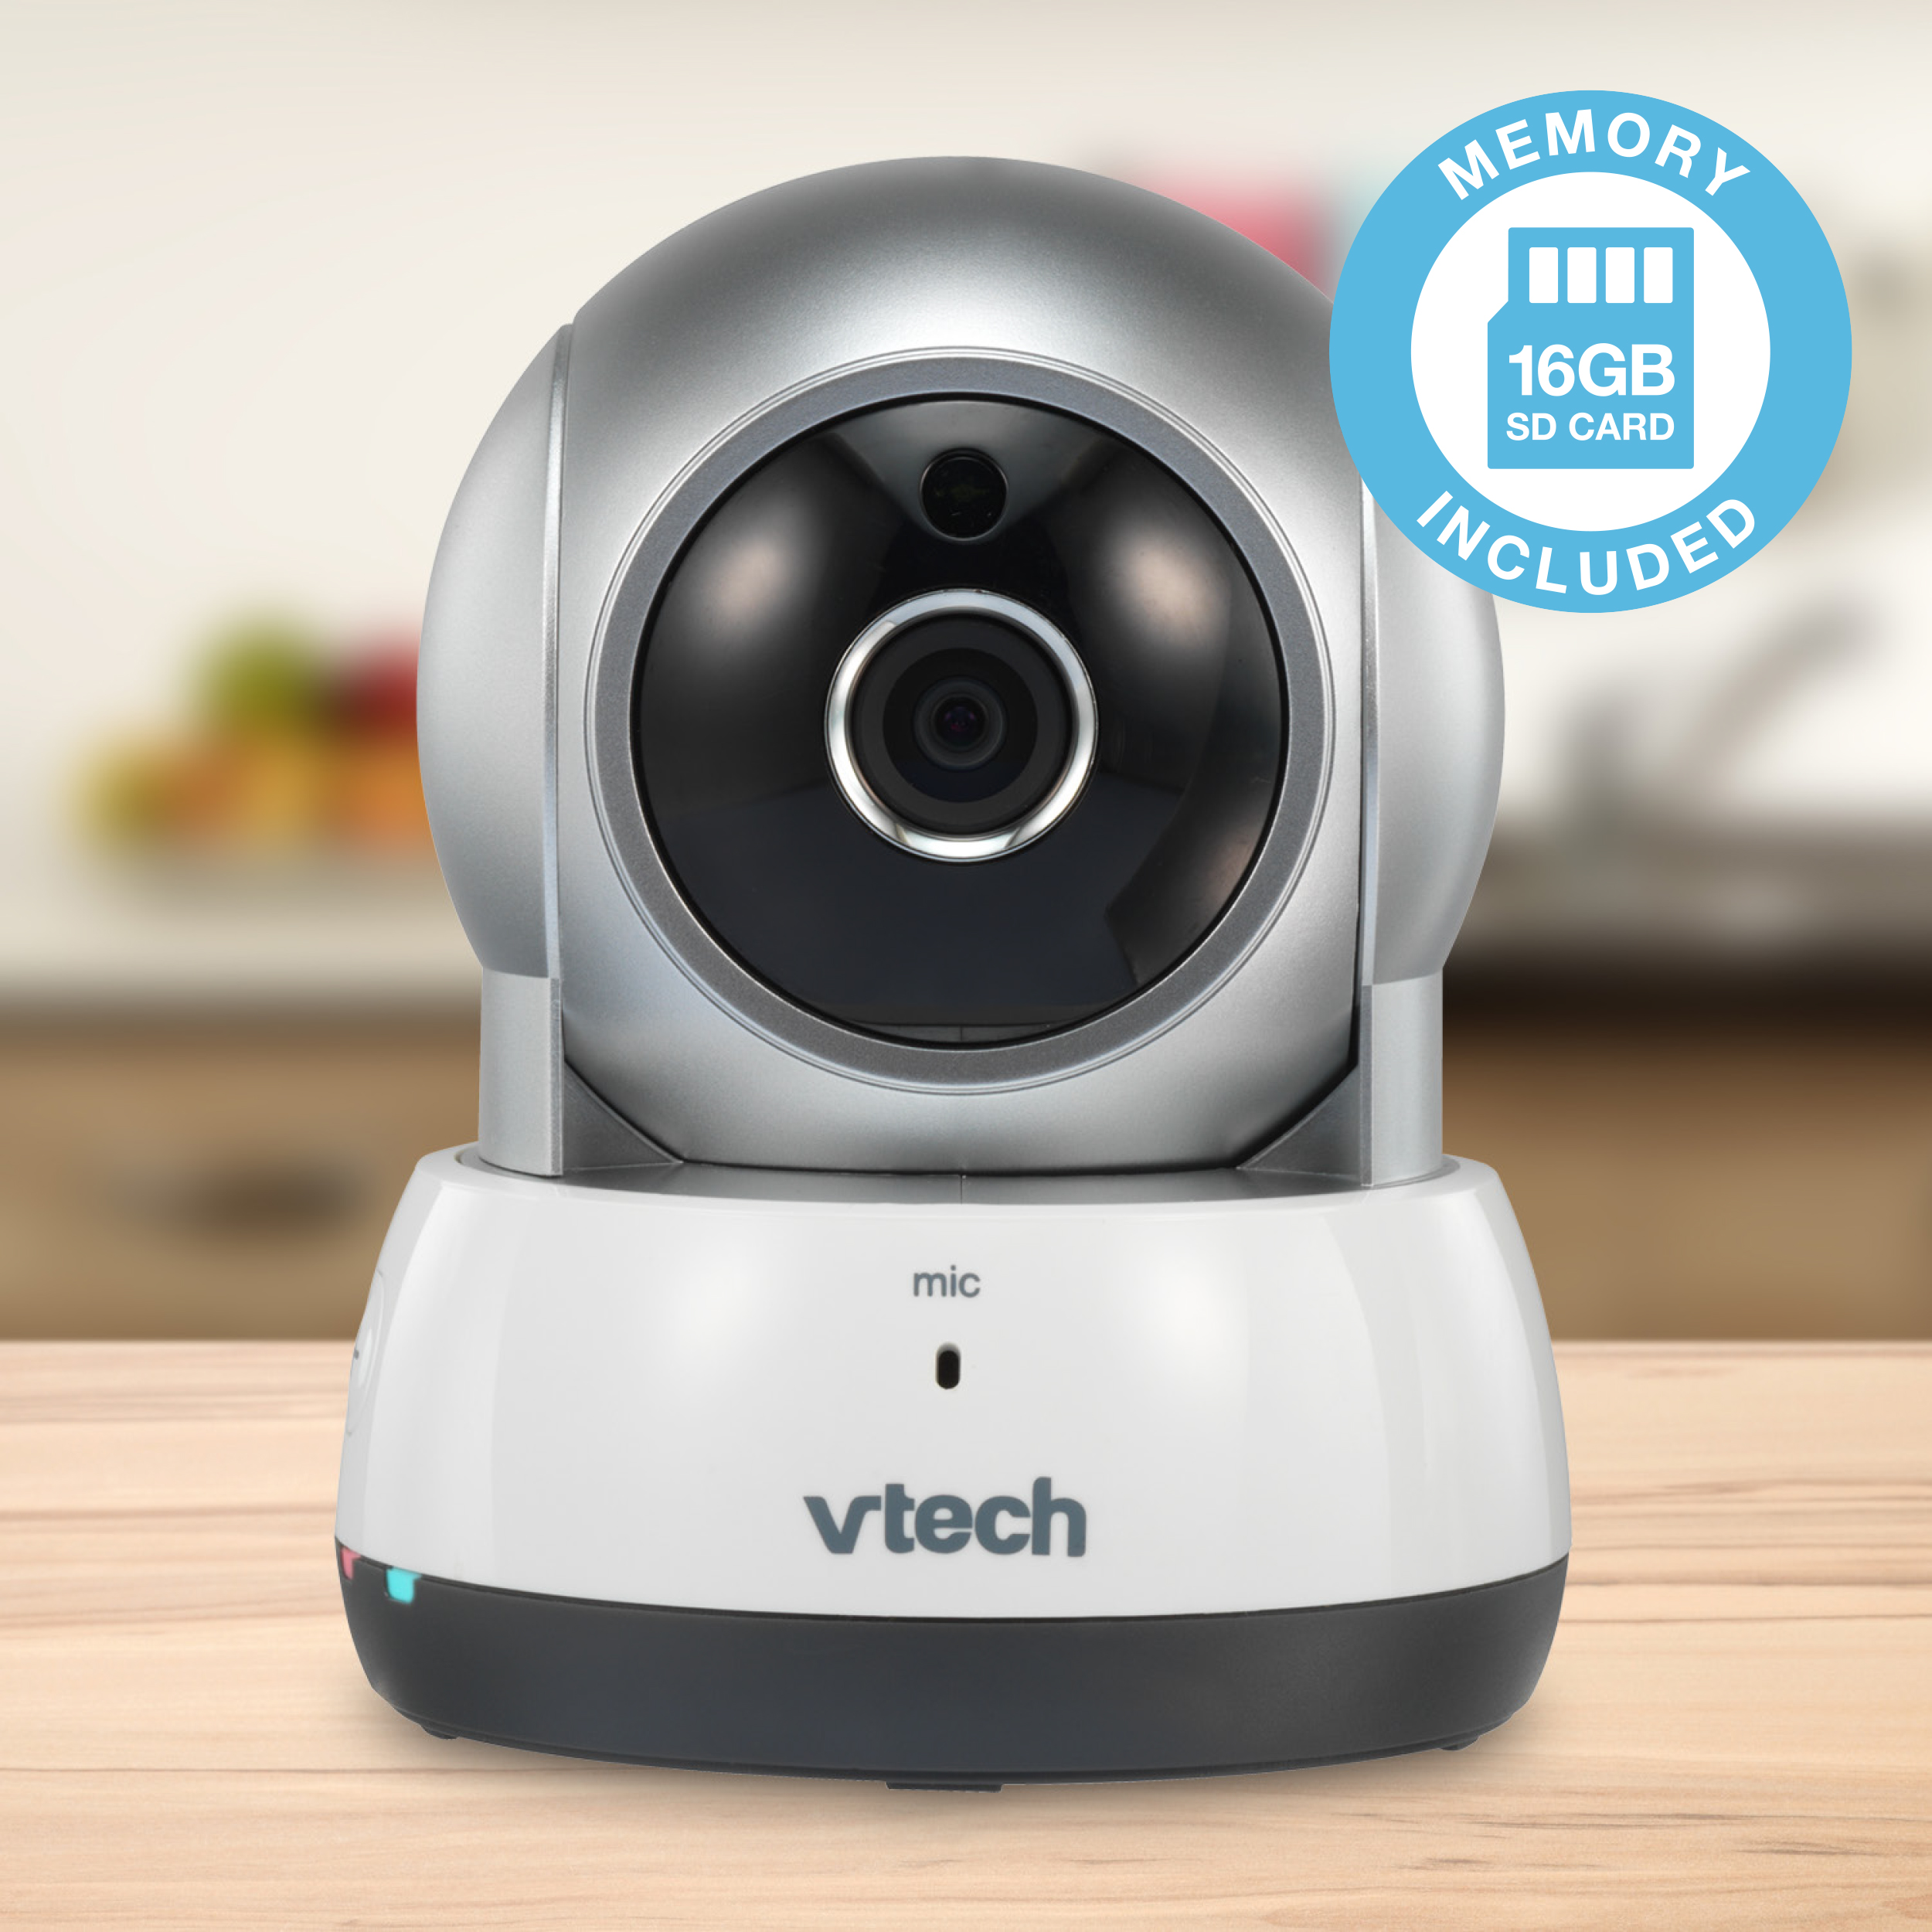 VTech VC9311-112 16GB Wi-Fi IP Video Camera with Remote Pan & Tilt, Free Live Streaming & Automatic Night Vision